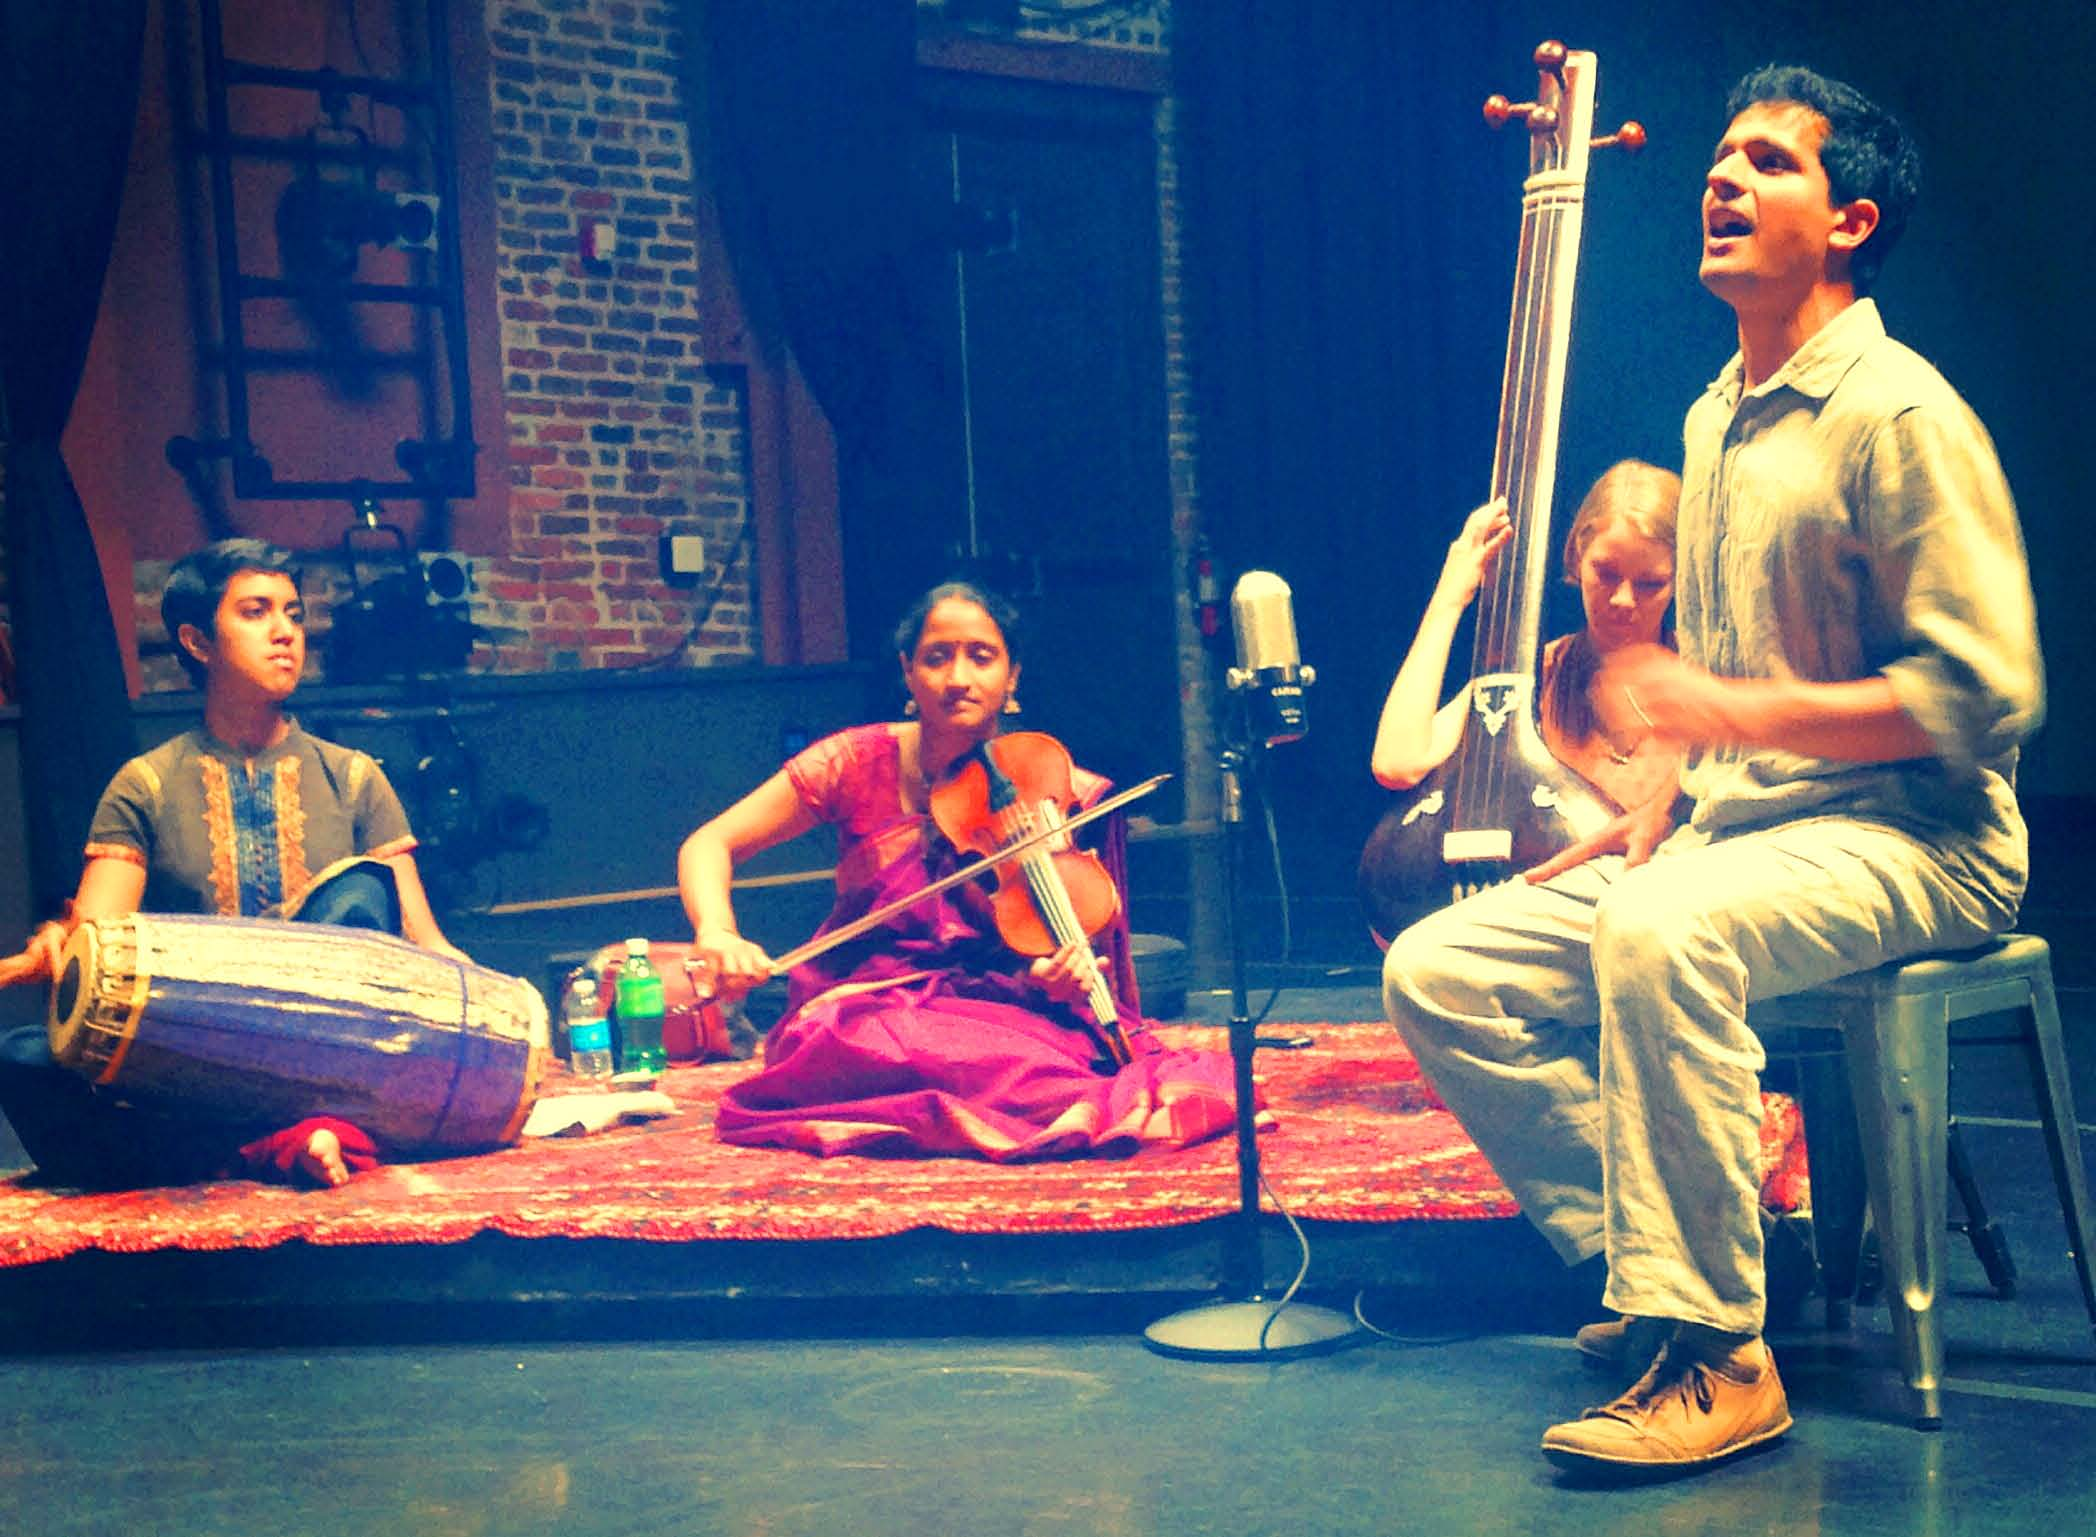 New_Carnatic_Music_with_Gautam_Tejas_Ganeshan_Photo_1_Slight_Cropped.jpg